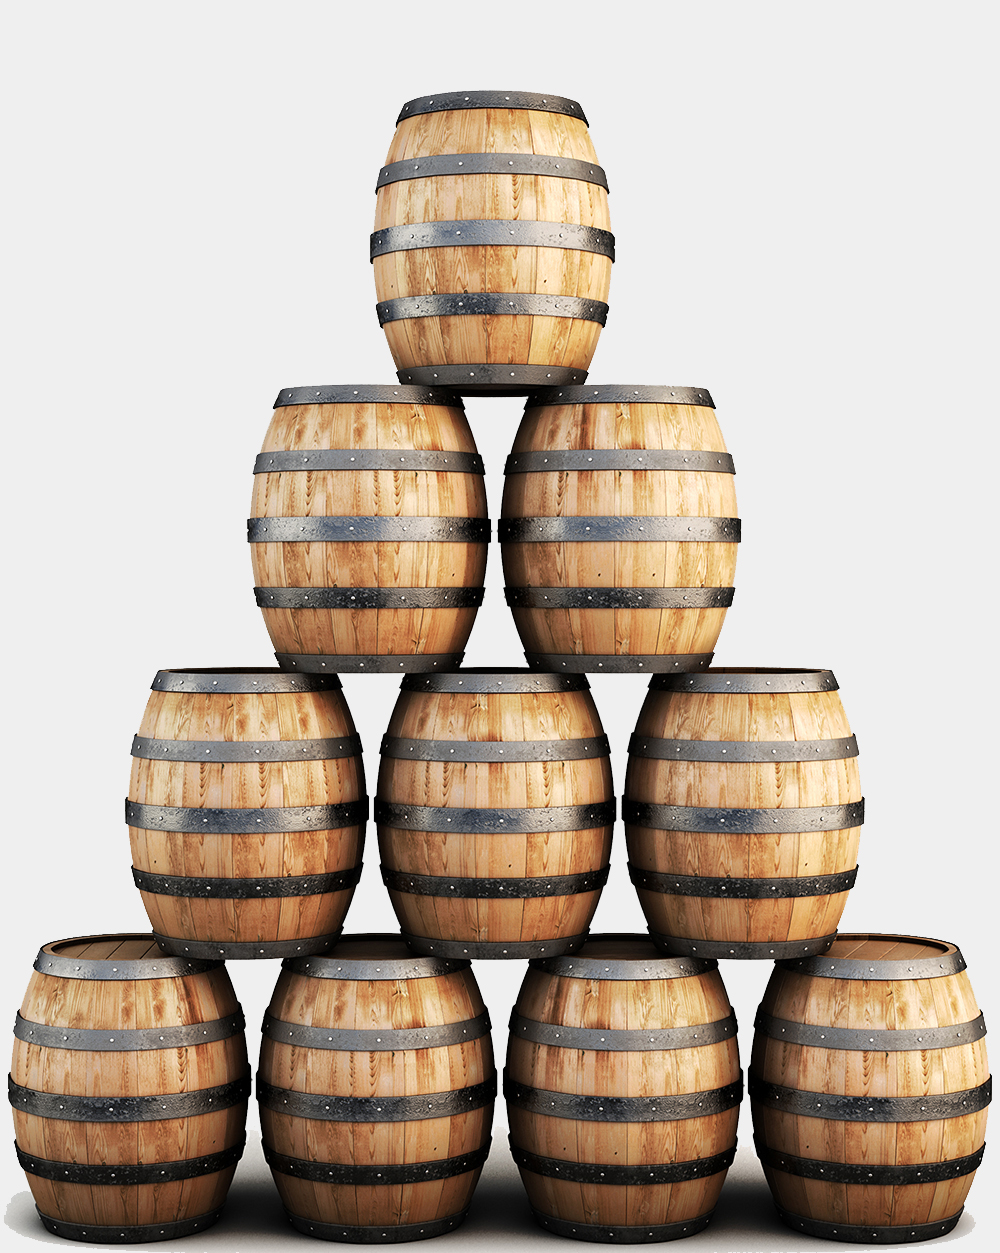 Image of a stack of wooden barrels